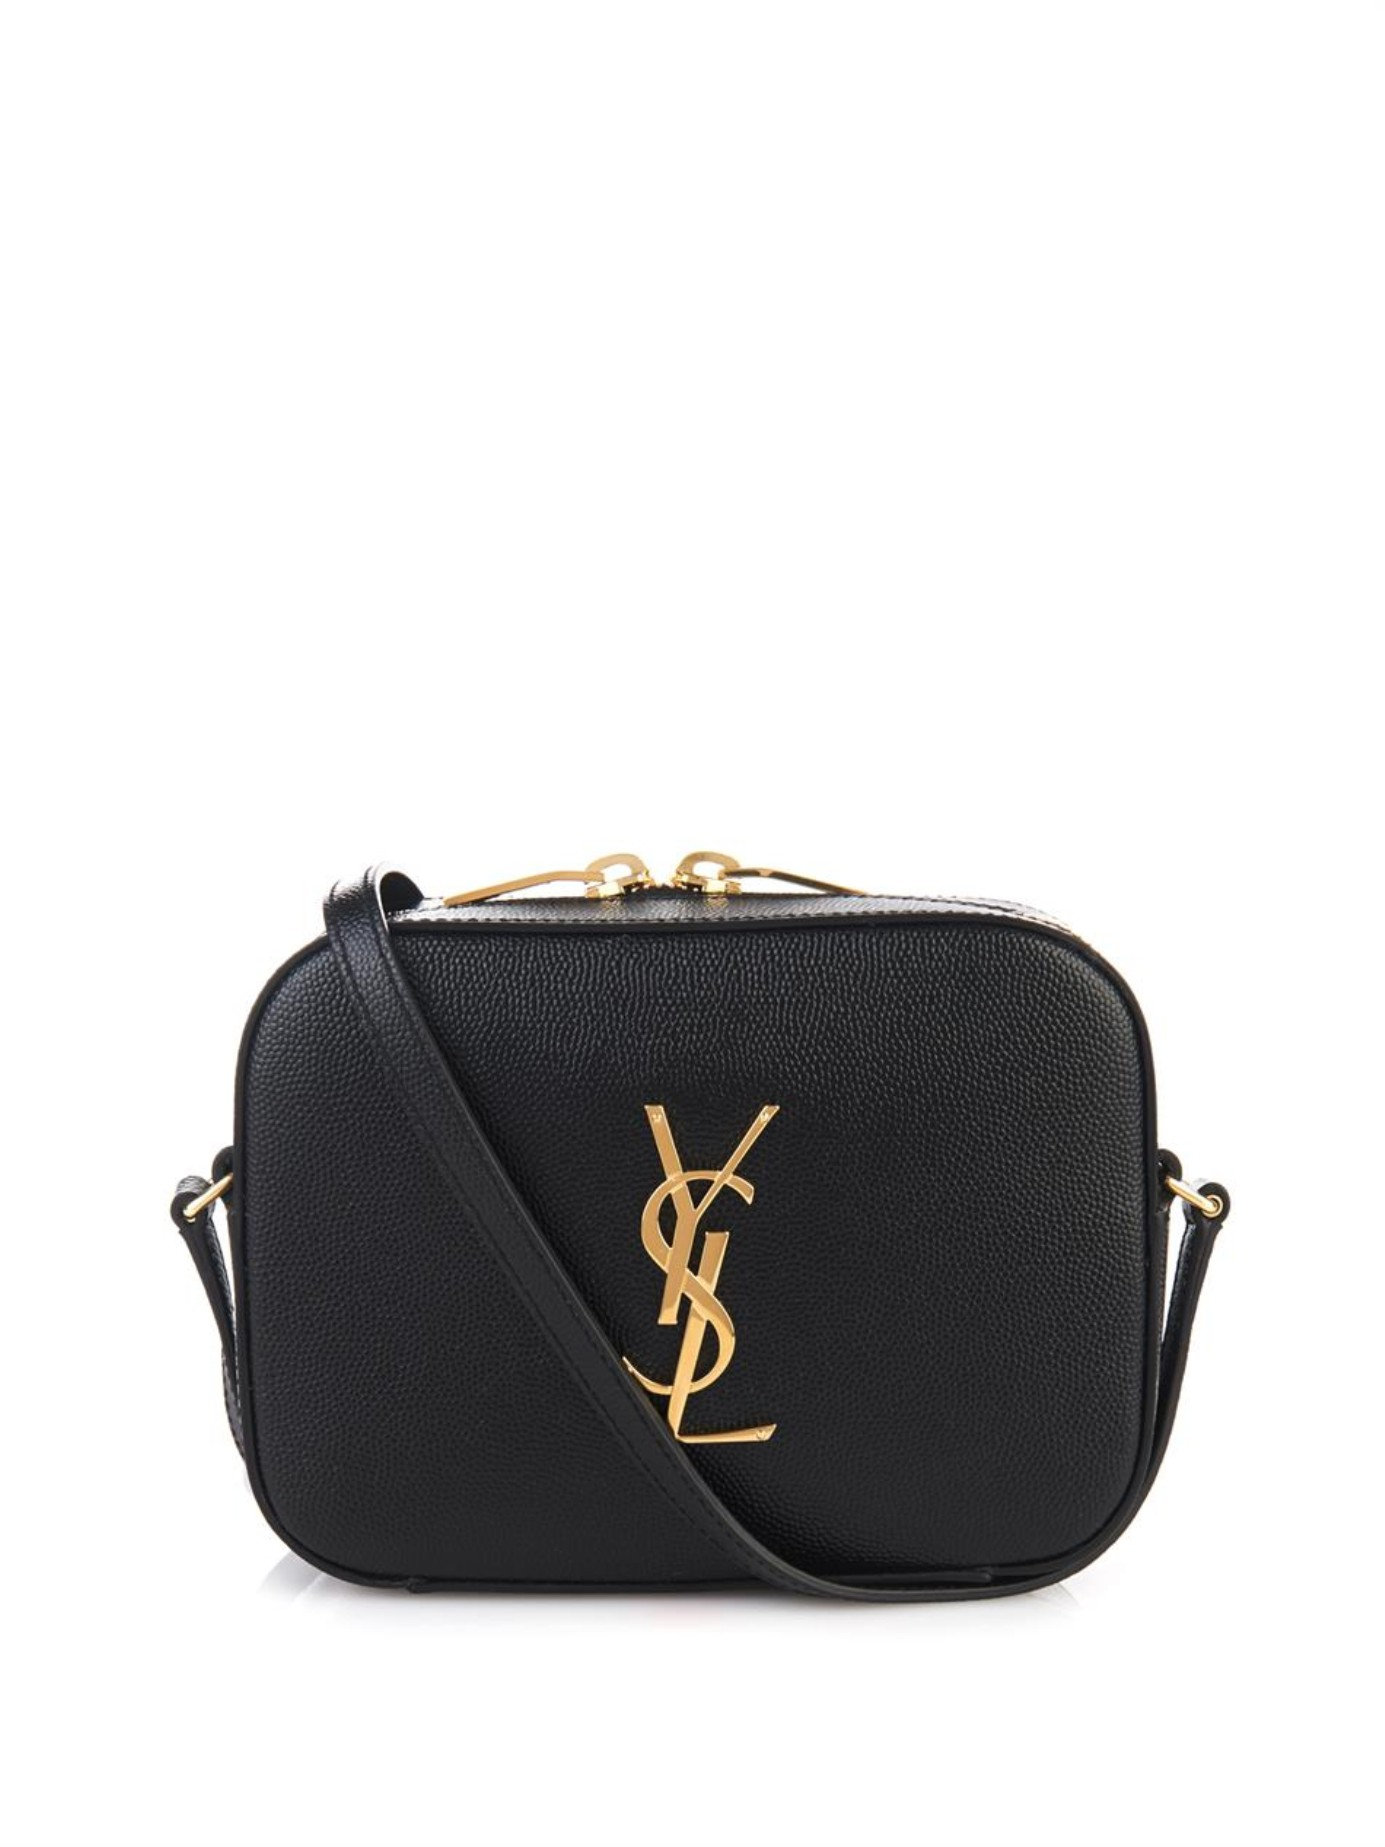 classic small monogram saint laurent camera bag in black grain de poudre textured leather. Black Bedroom Furniture Sets. Home Design Ideas